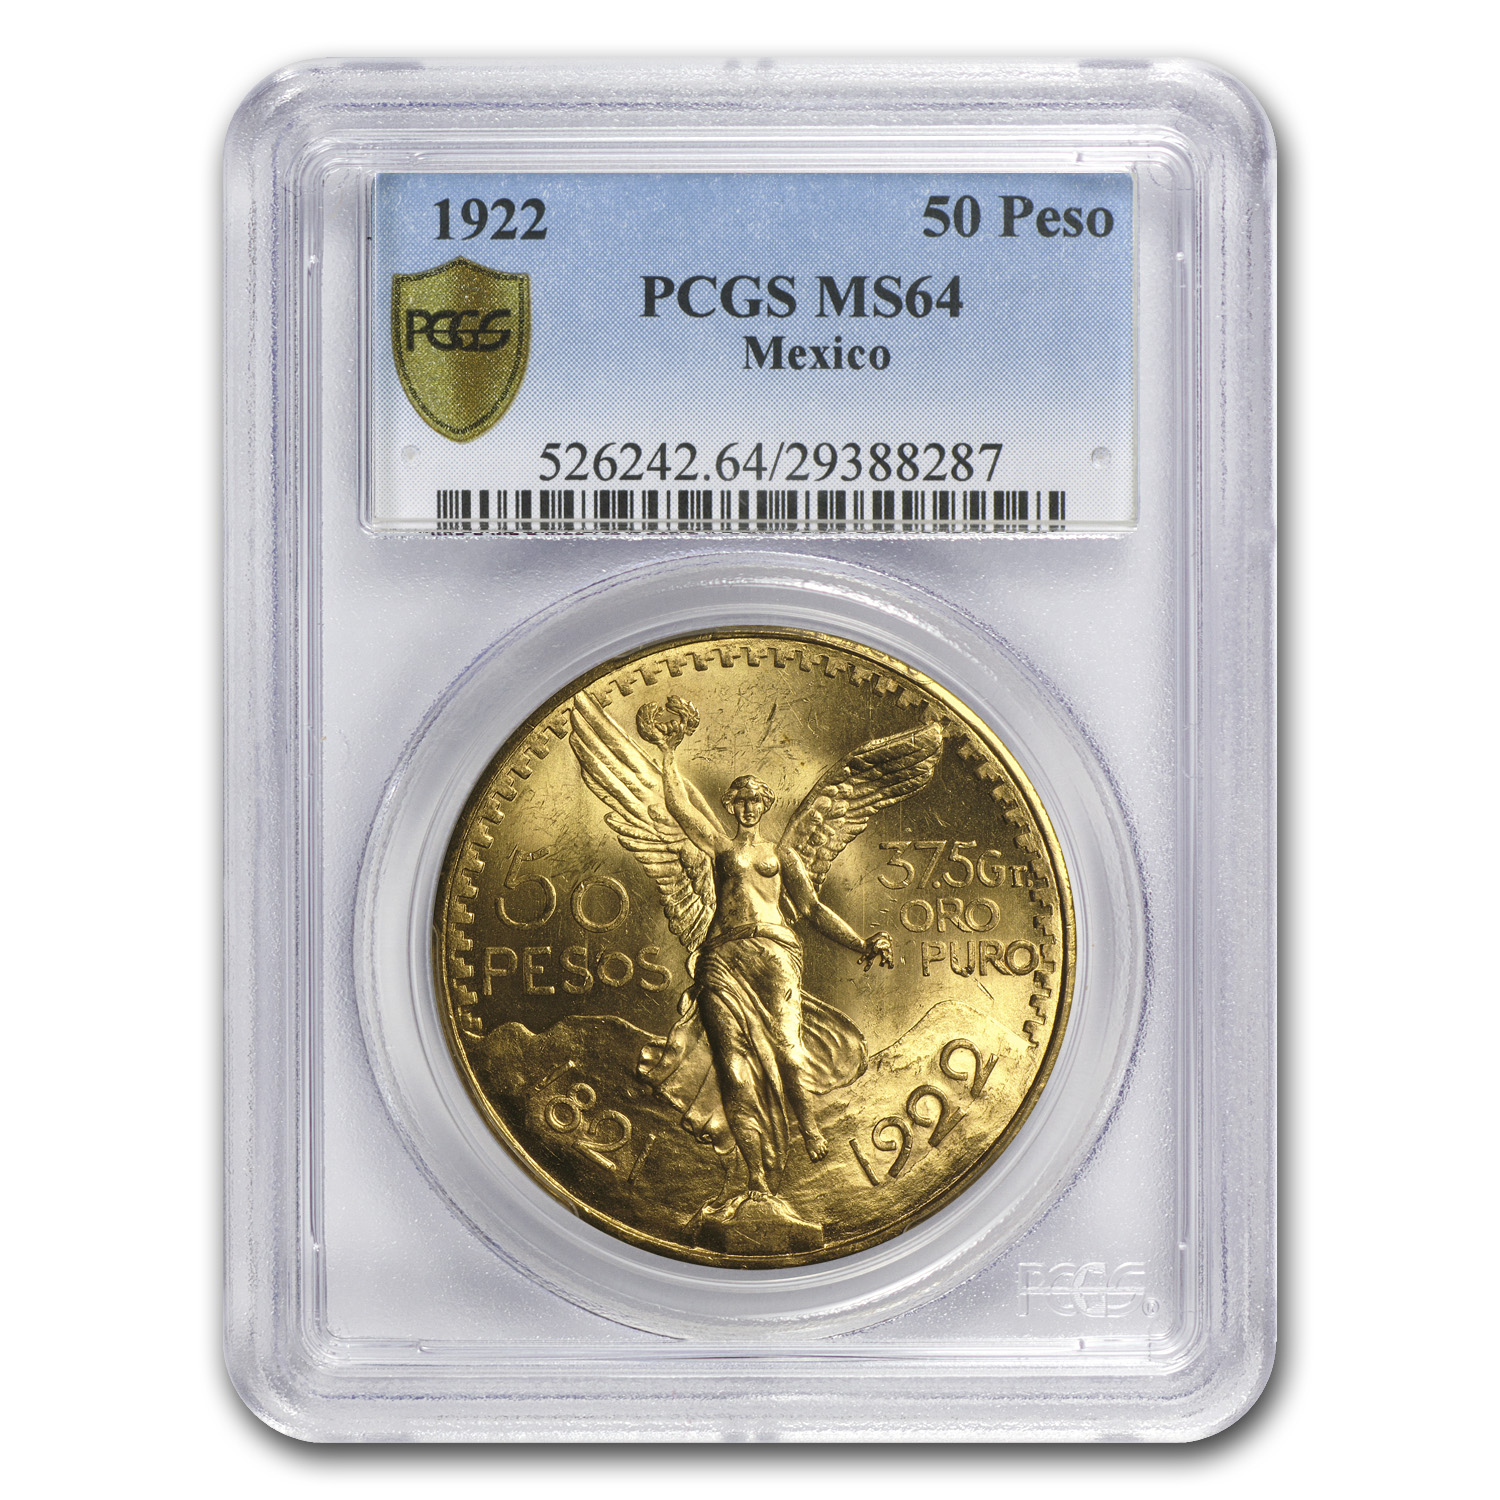 Mexico 1922 50 Pesos Gold Coin - MS-64 PCGS (Secure Plus!)